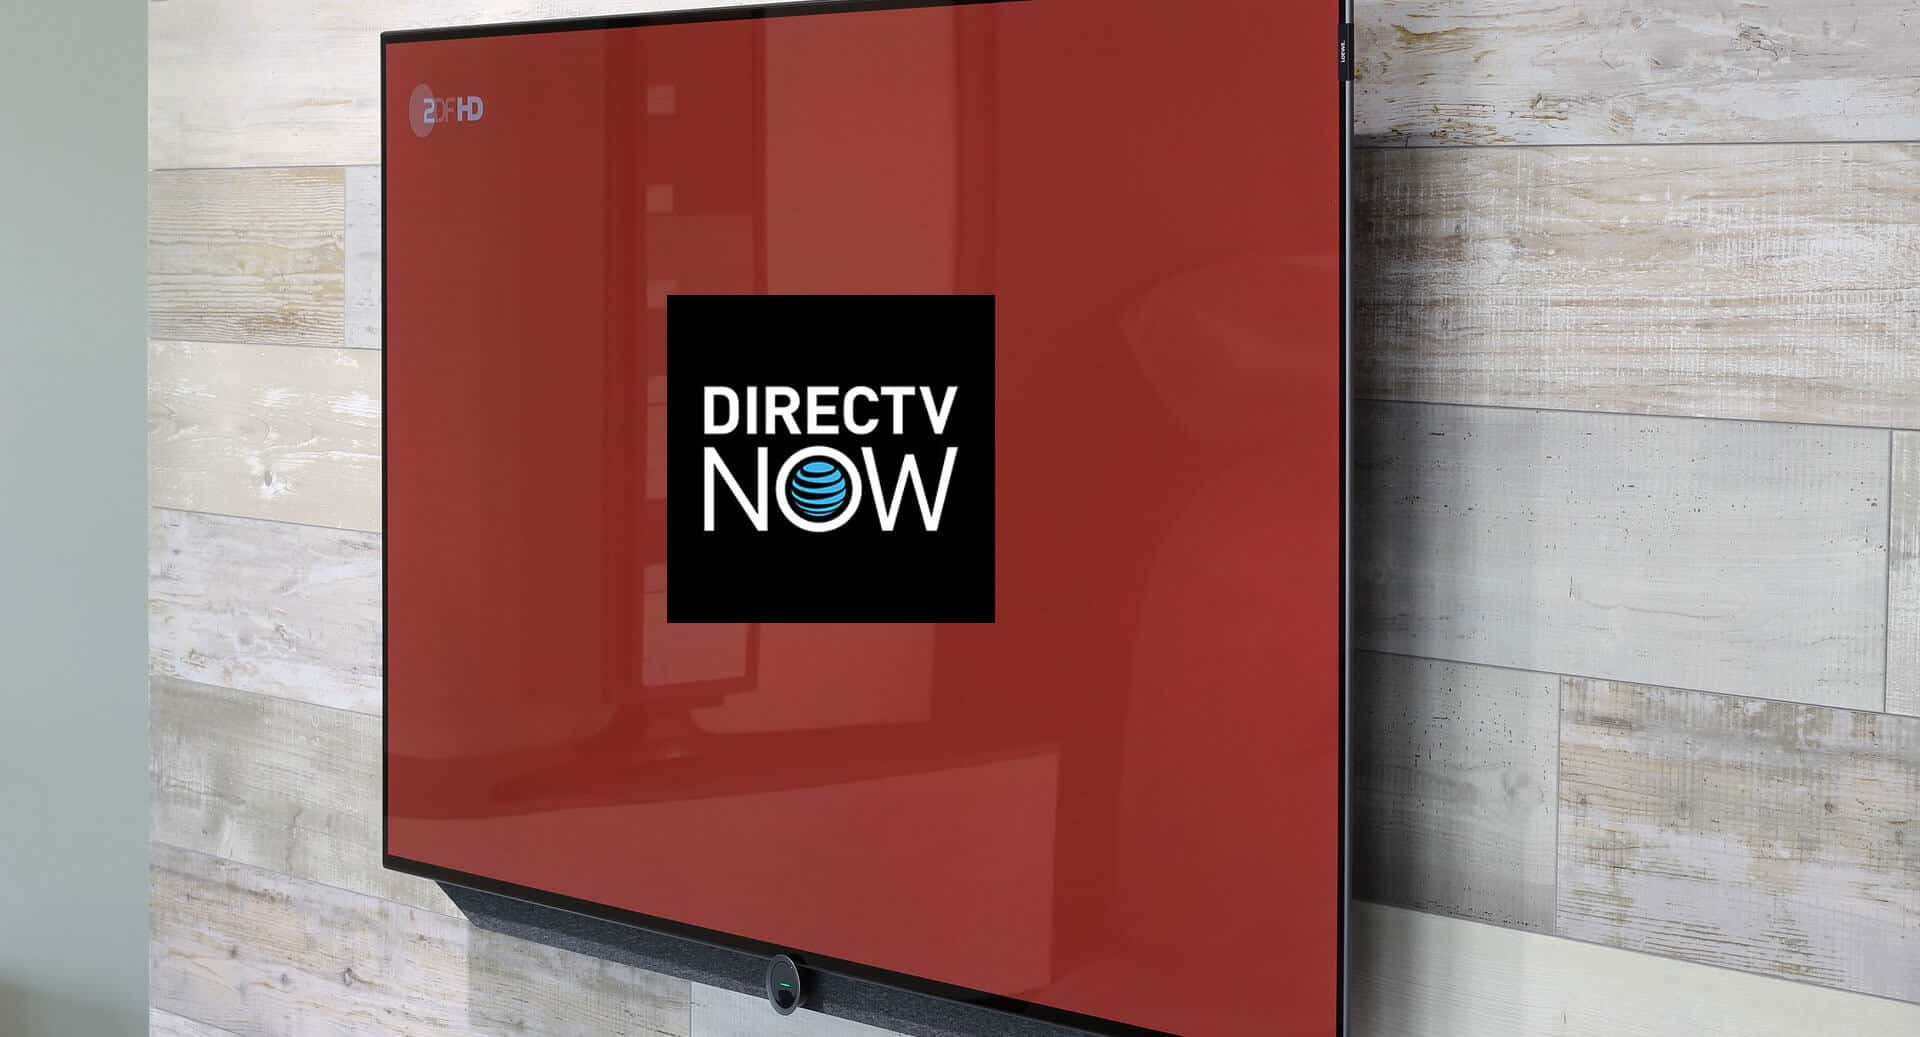 Intro to cord cutting: DirecTV Now review - Channels, DVR